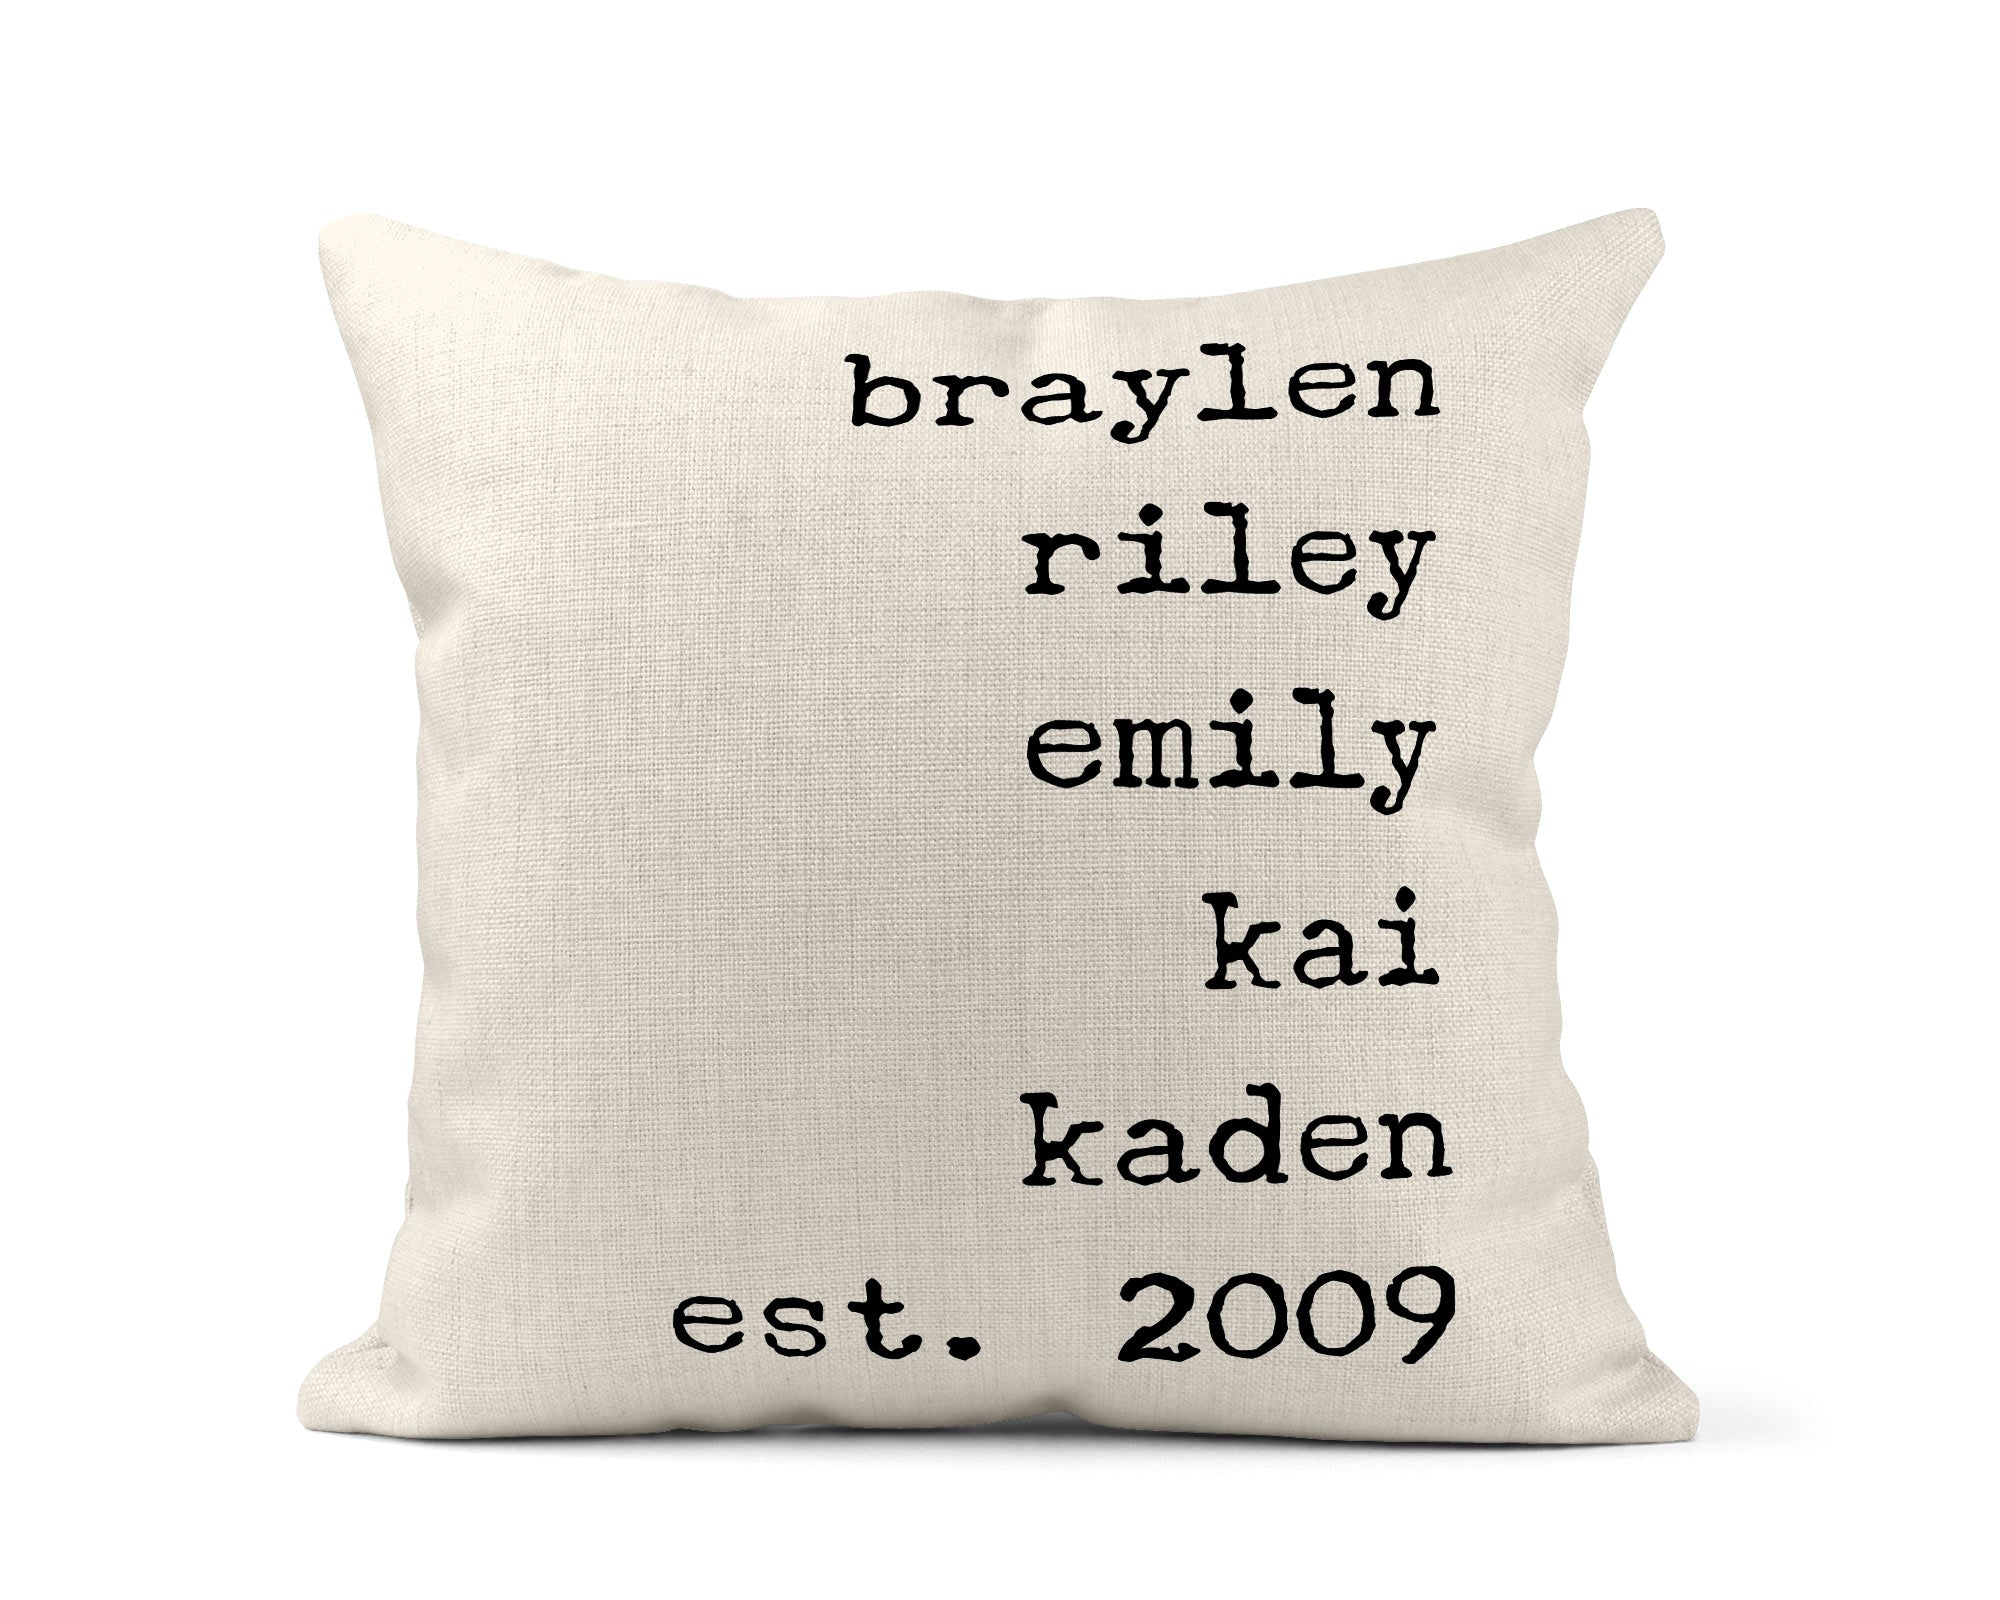 Family Pillows-Home Decor-Maddie & Co.